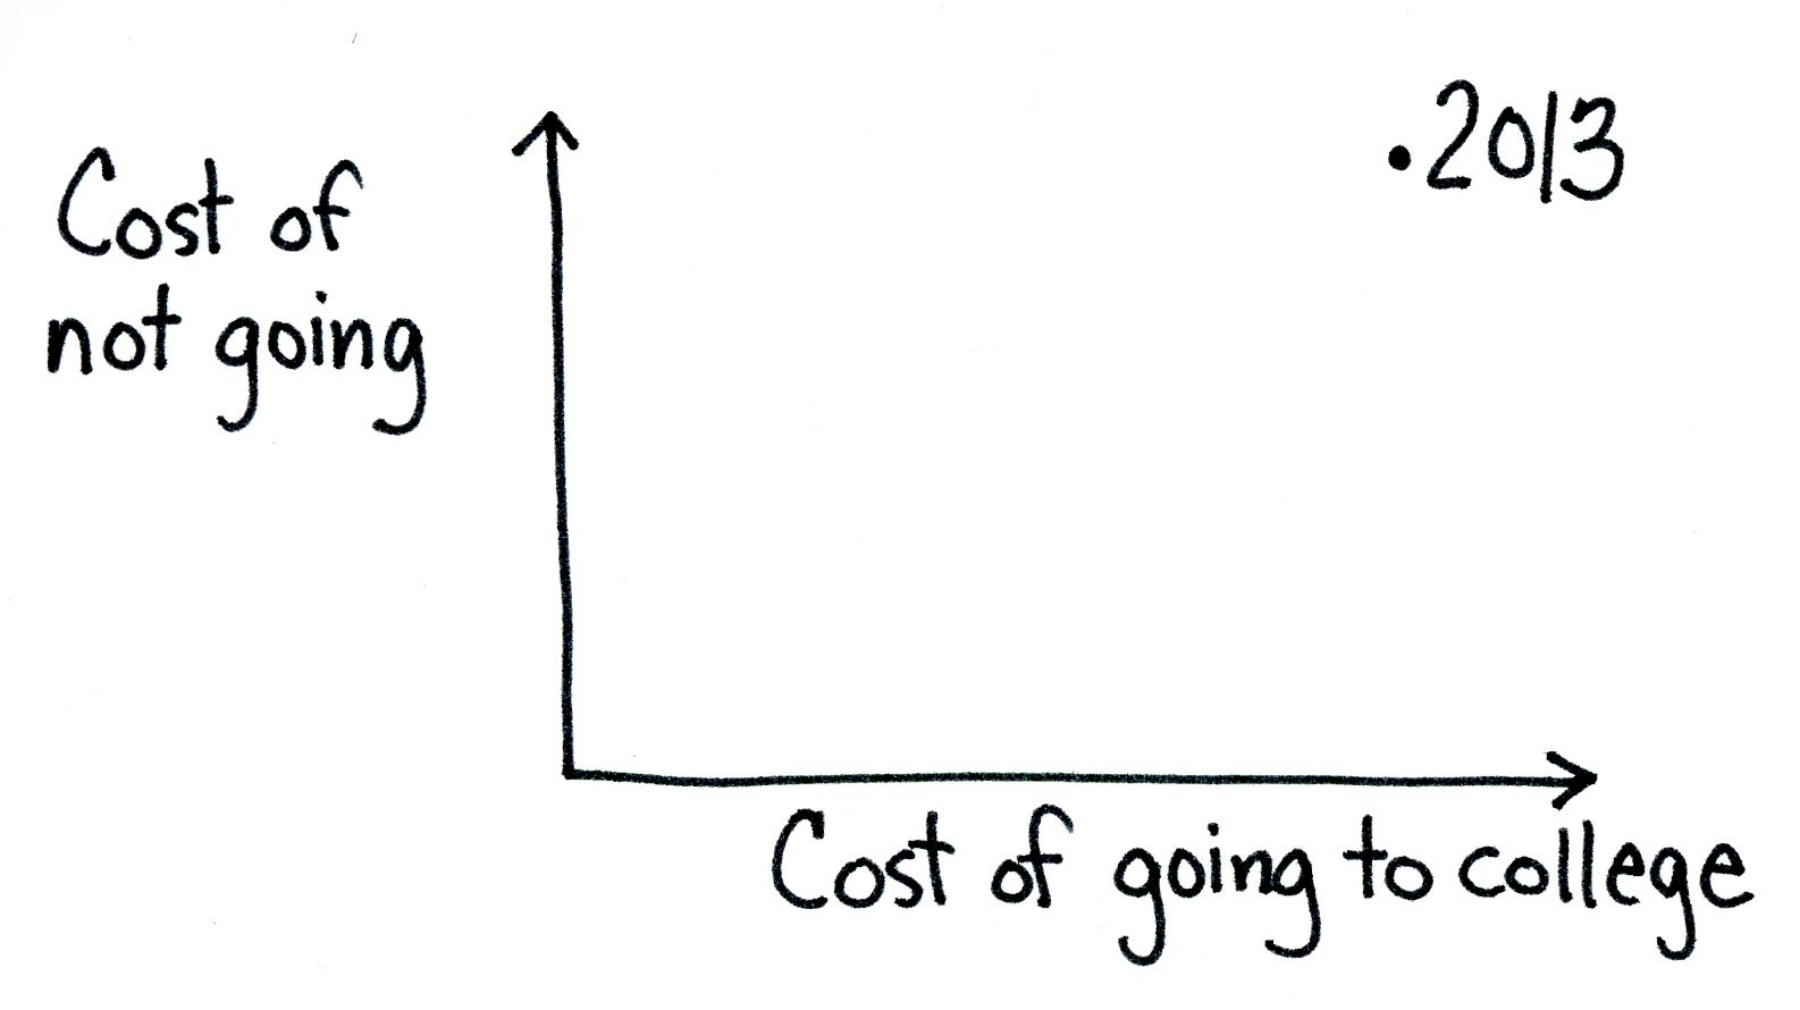 The cost of going to college